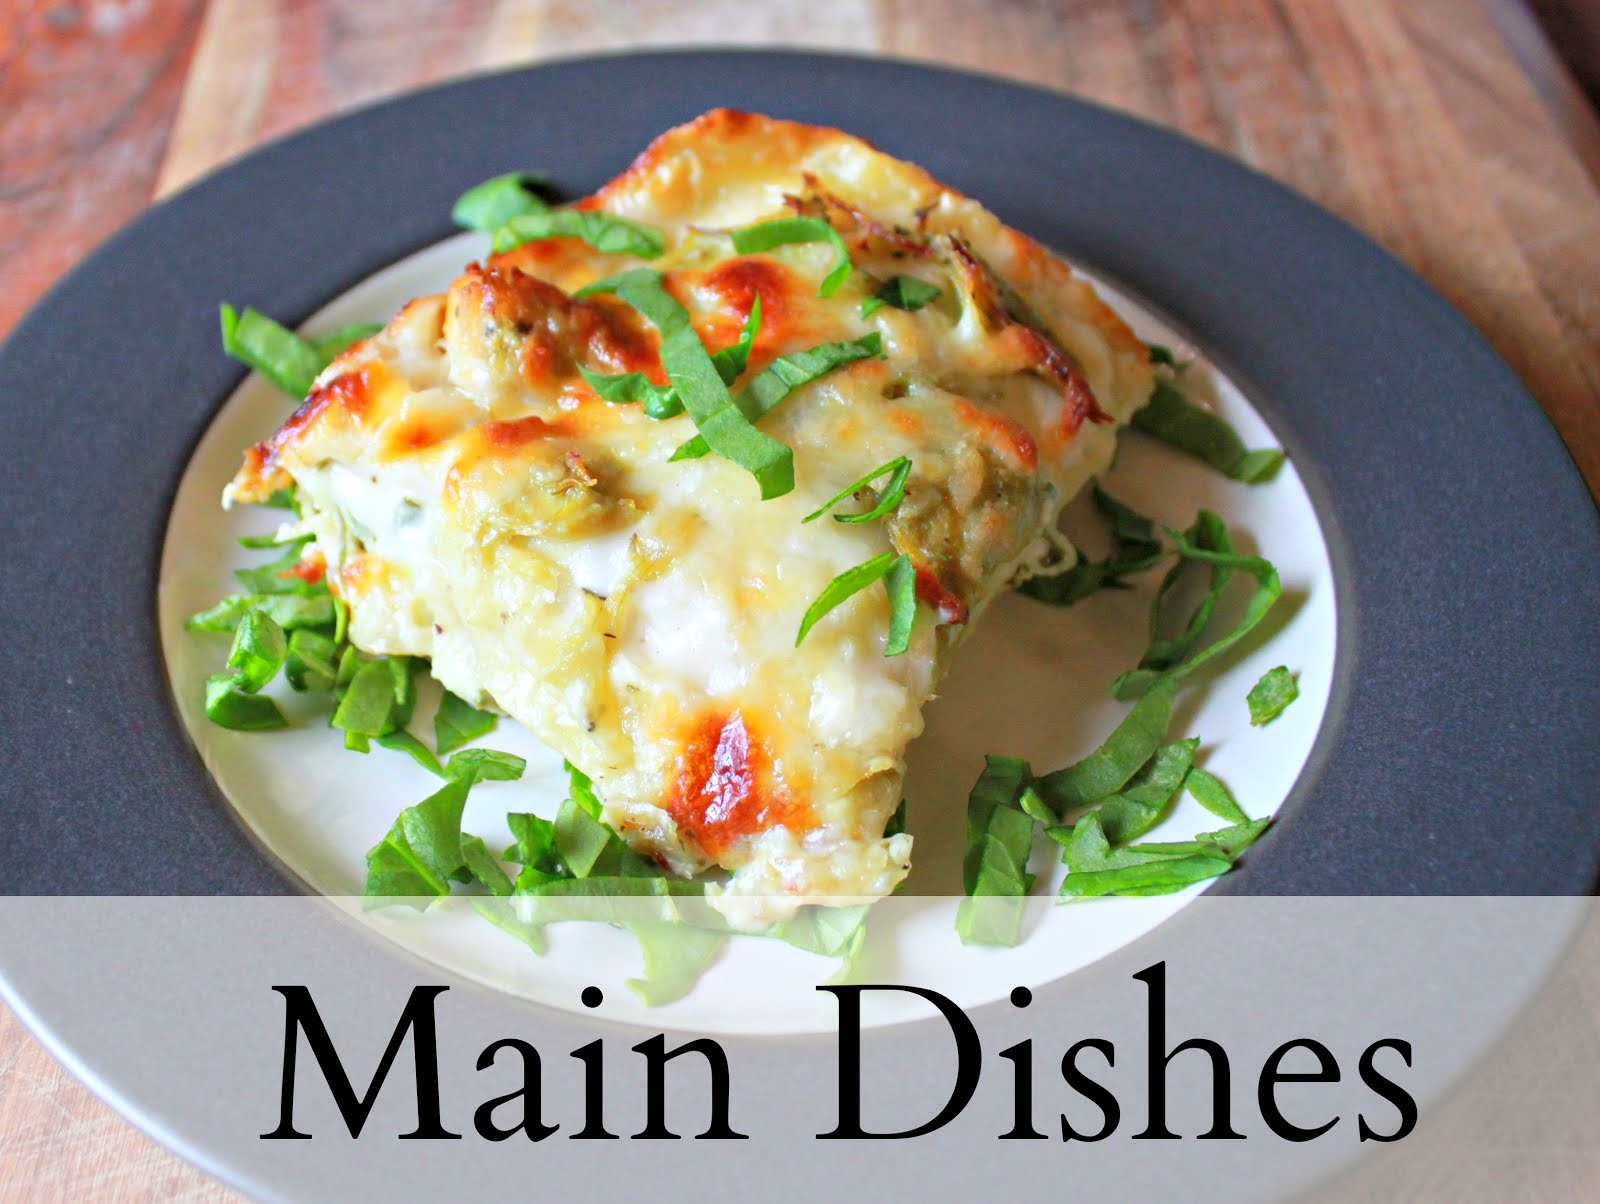 Click photo for More Main Dishes...